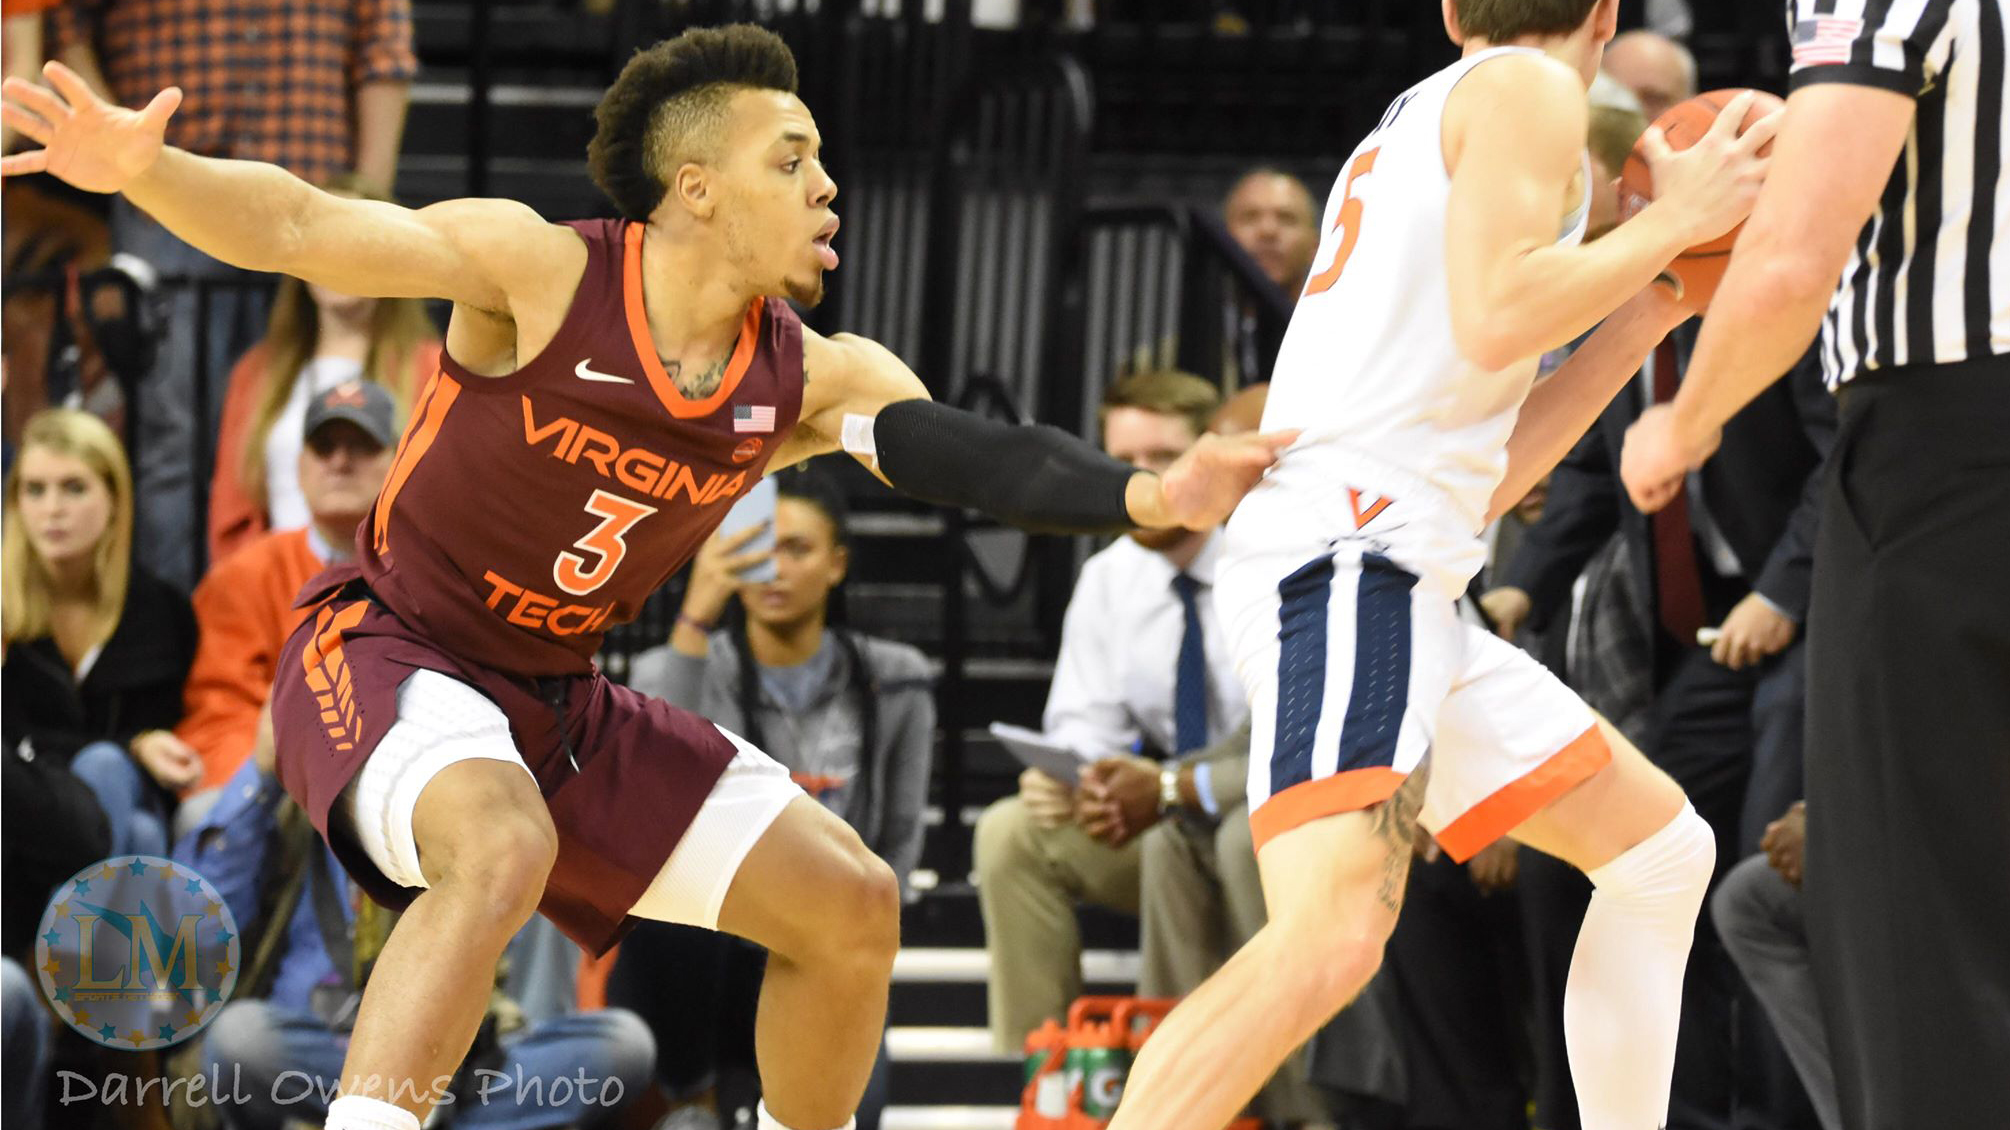 Virginia vs. Virginia Tech Basketball